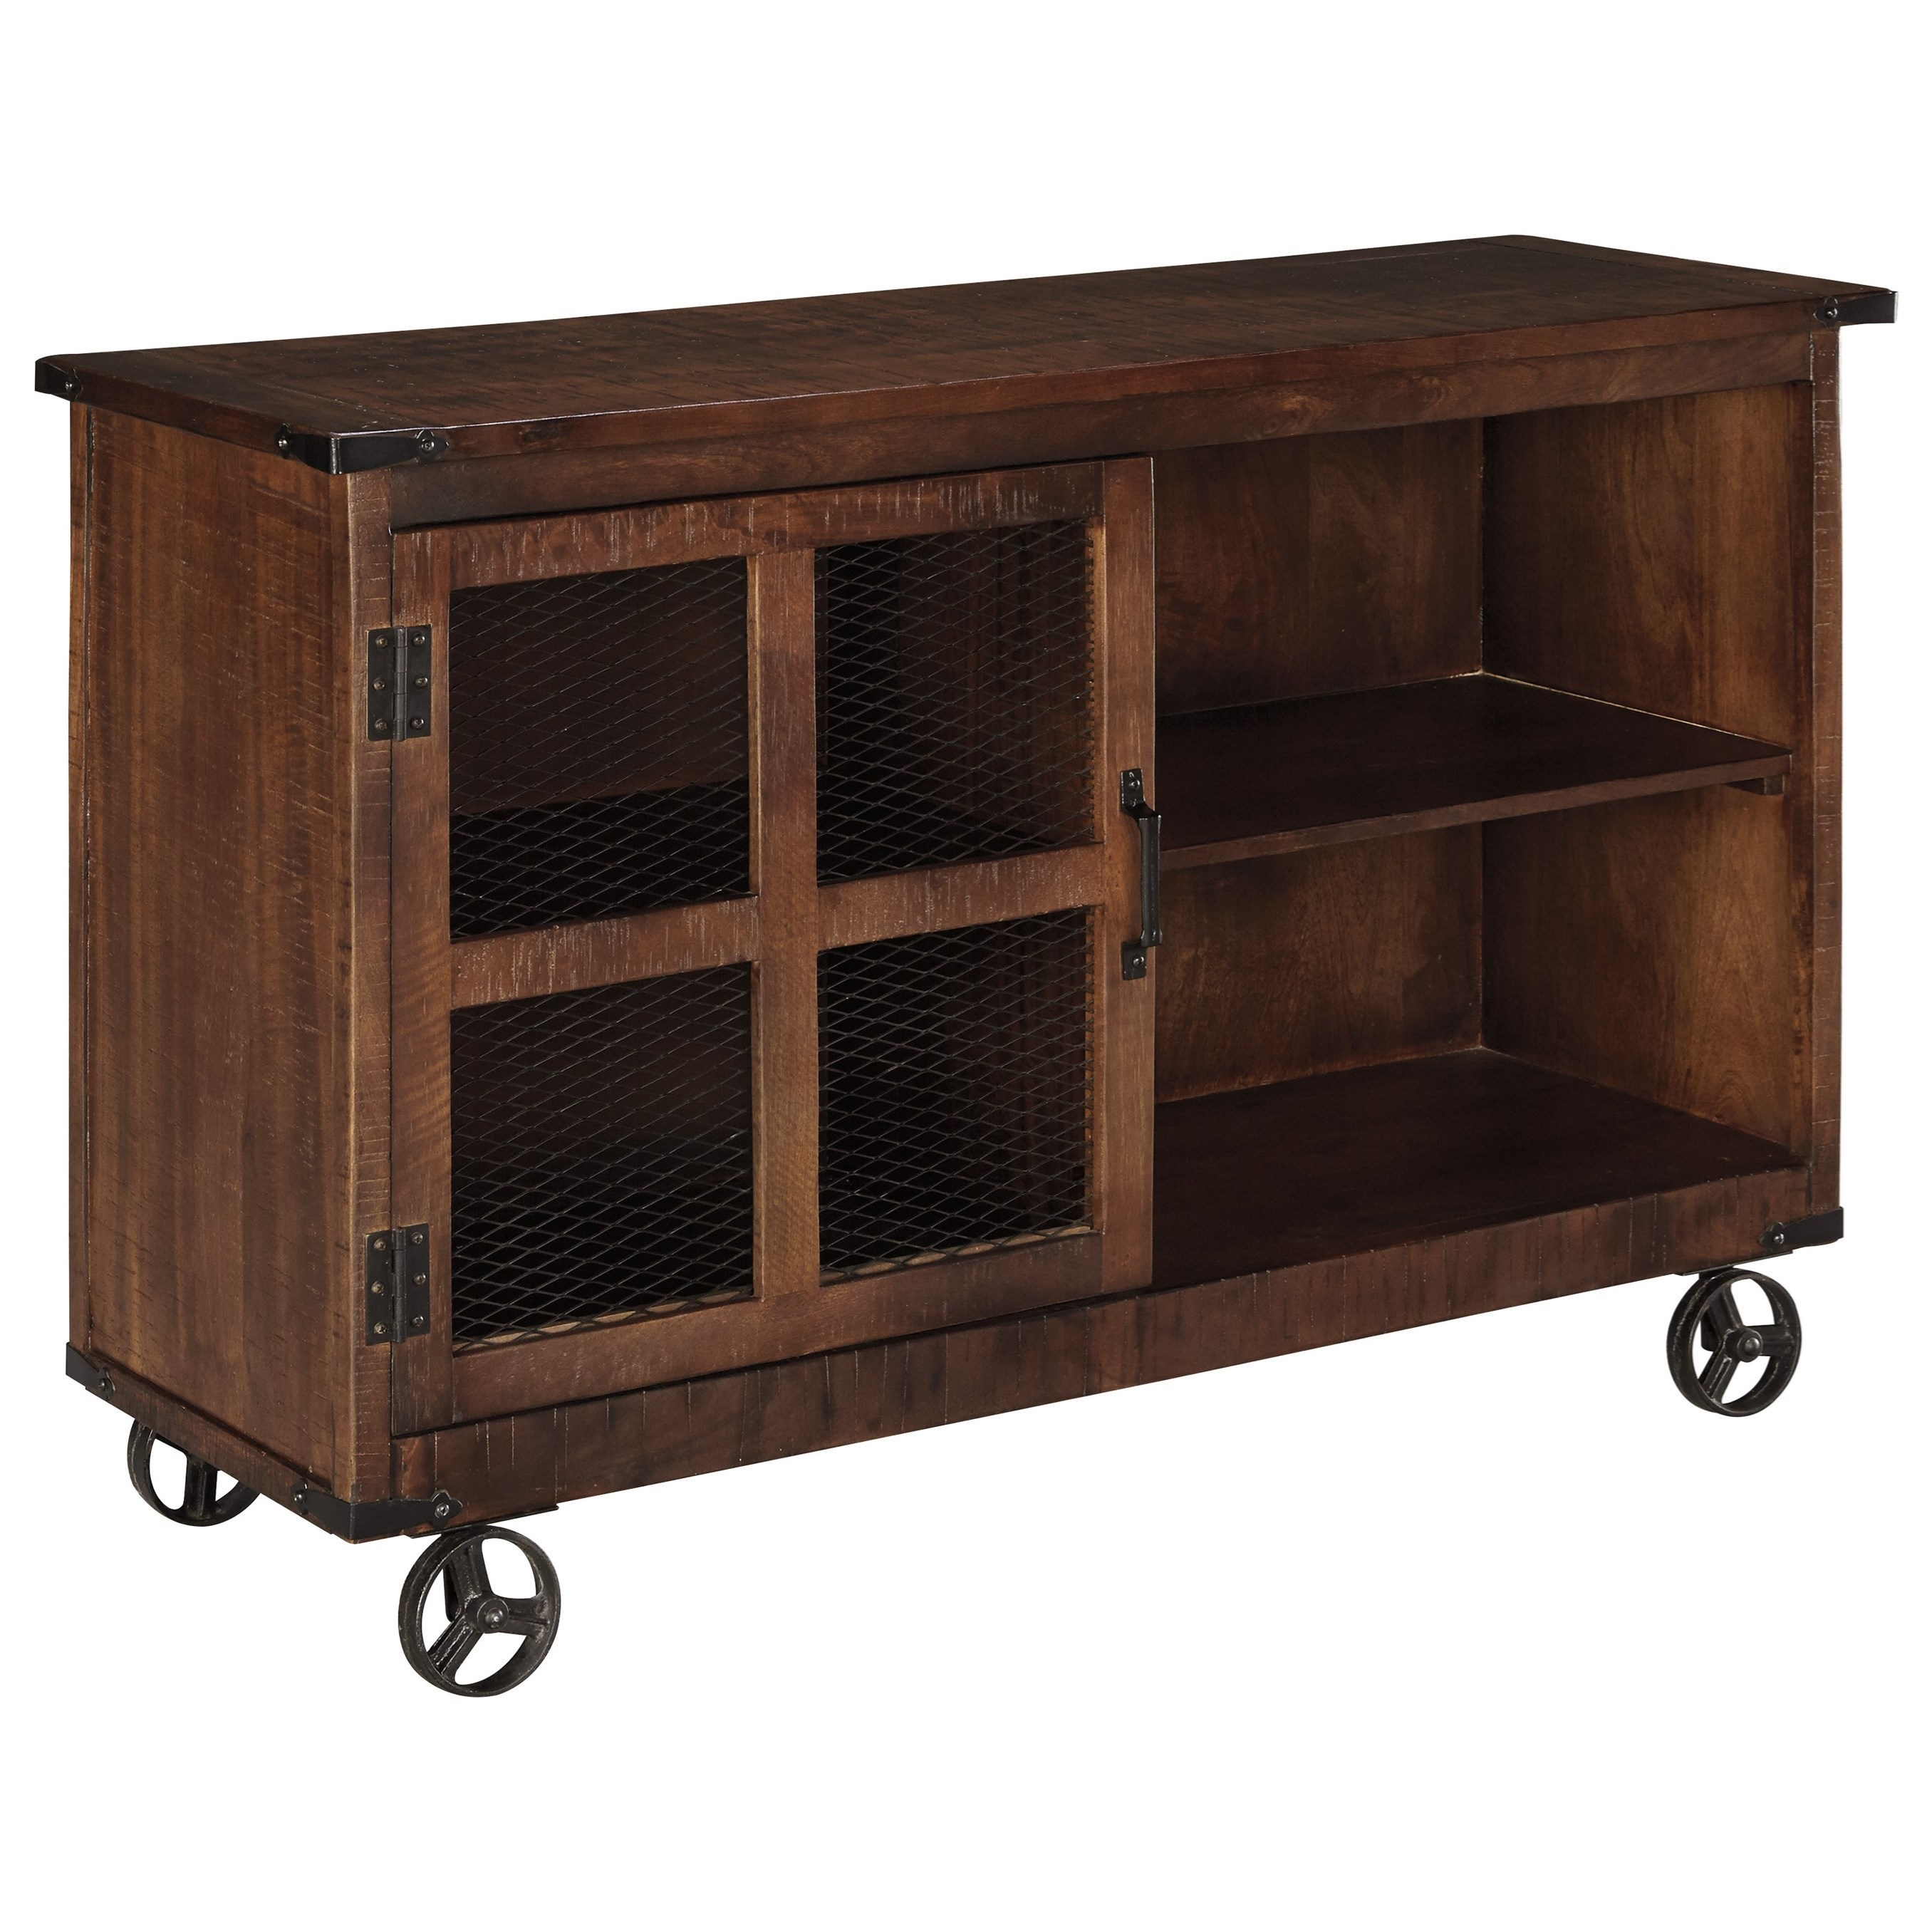 Signature Design By Ashley Norlandon Rustic Industrial Console With Door U0026  Wheels